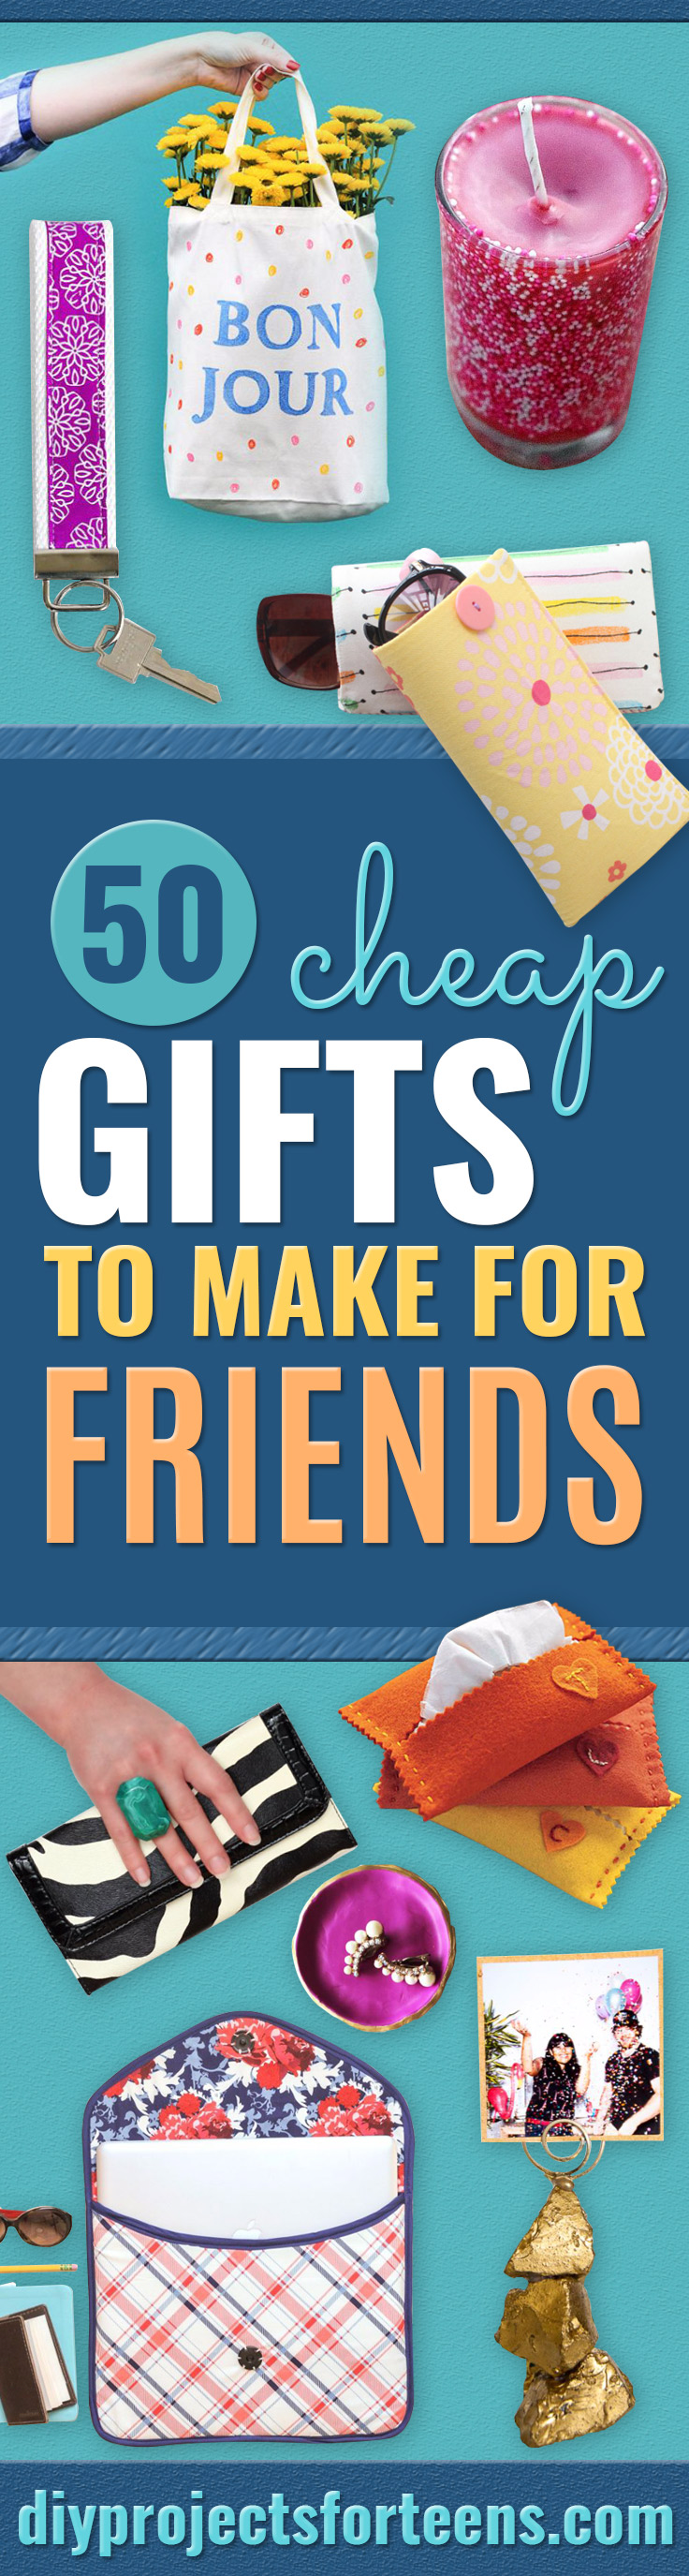 50 cheap gifts to